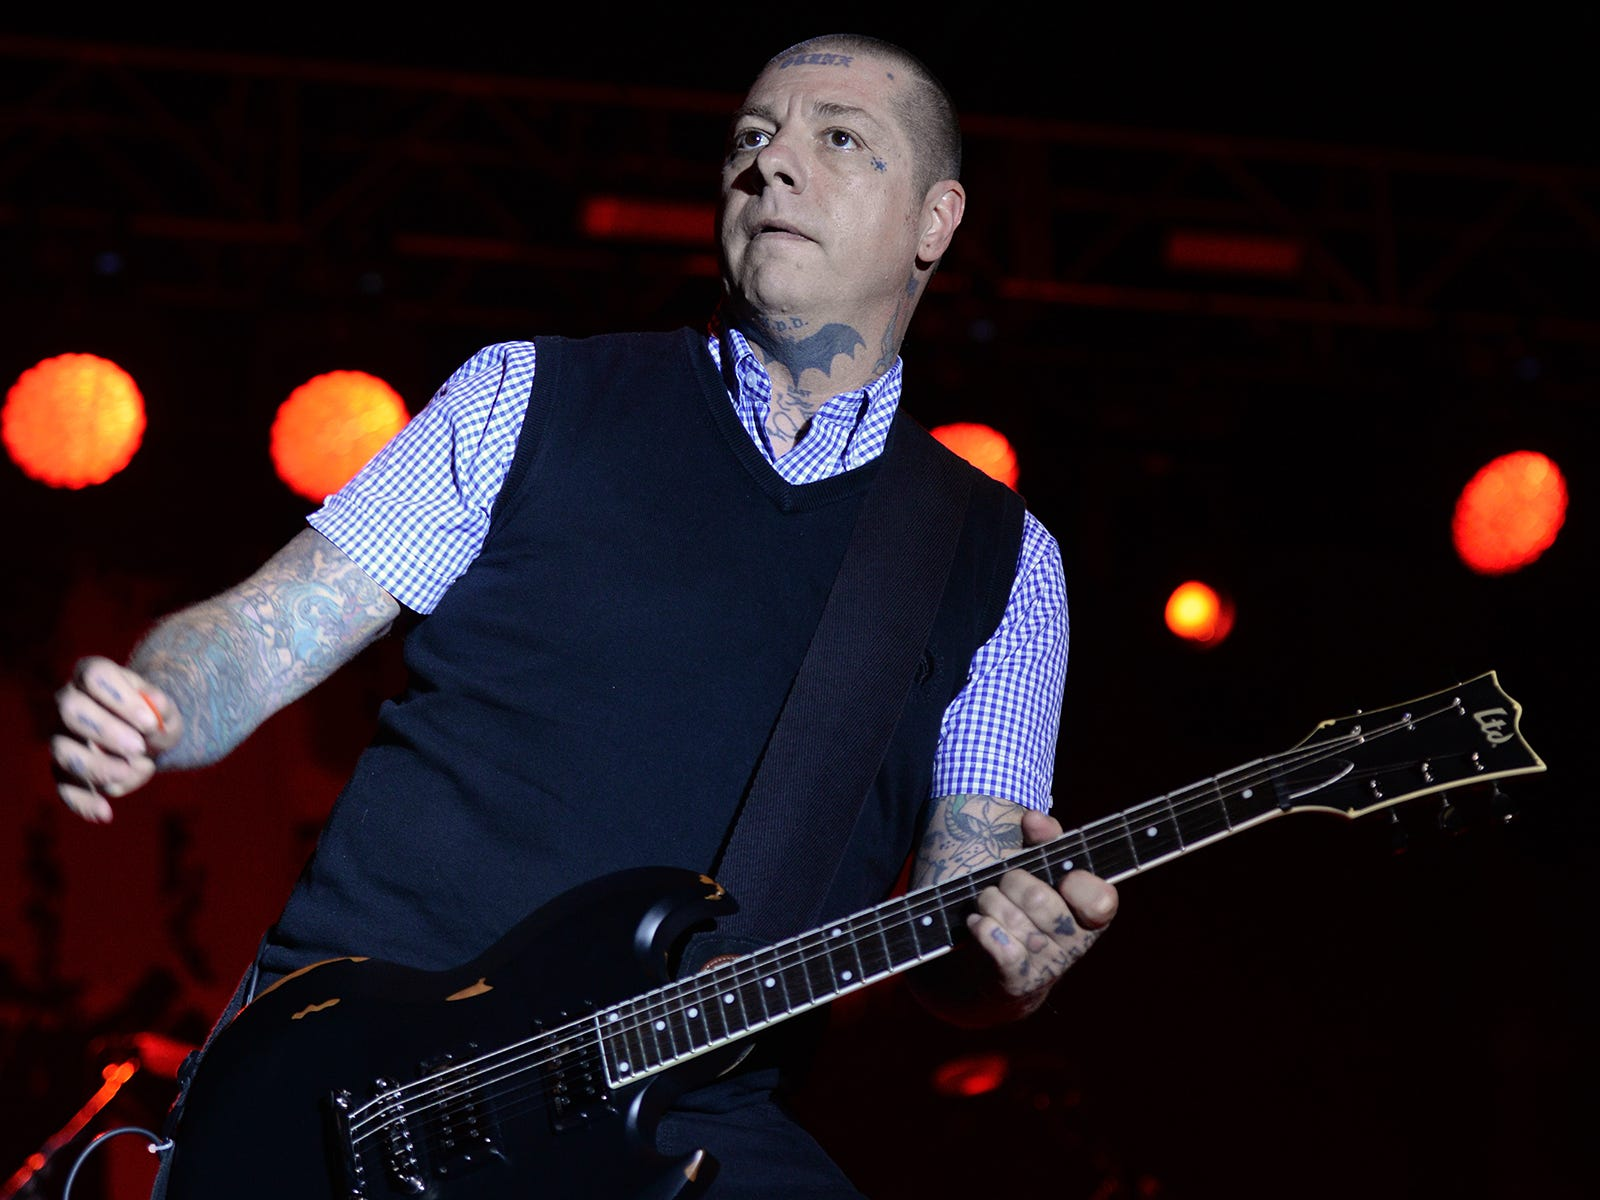 Rancid performs at Bash Festival in Phoenix on May 12, 2019.